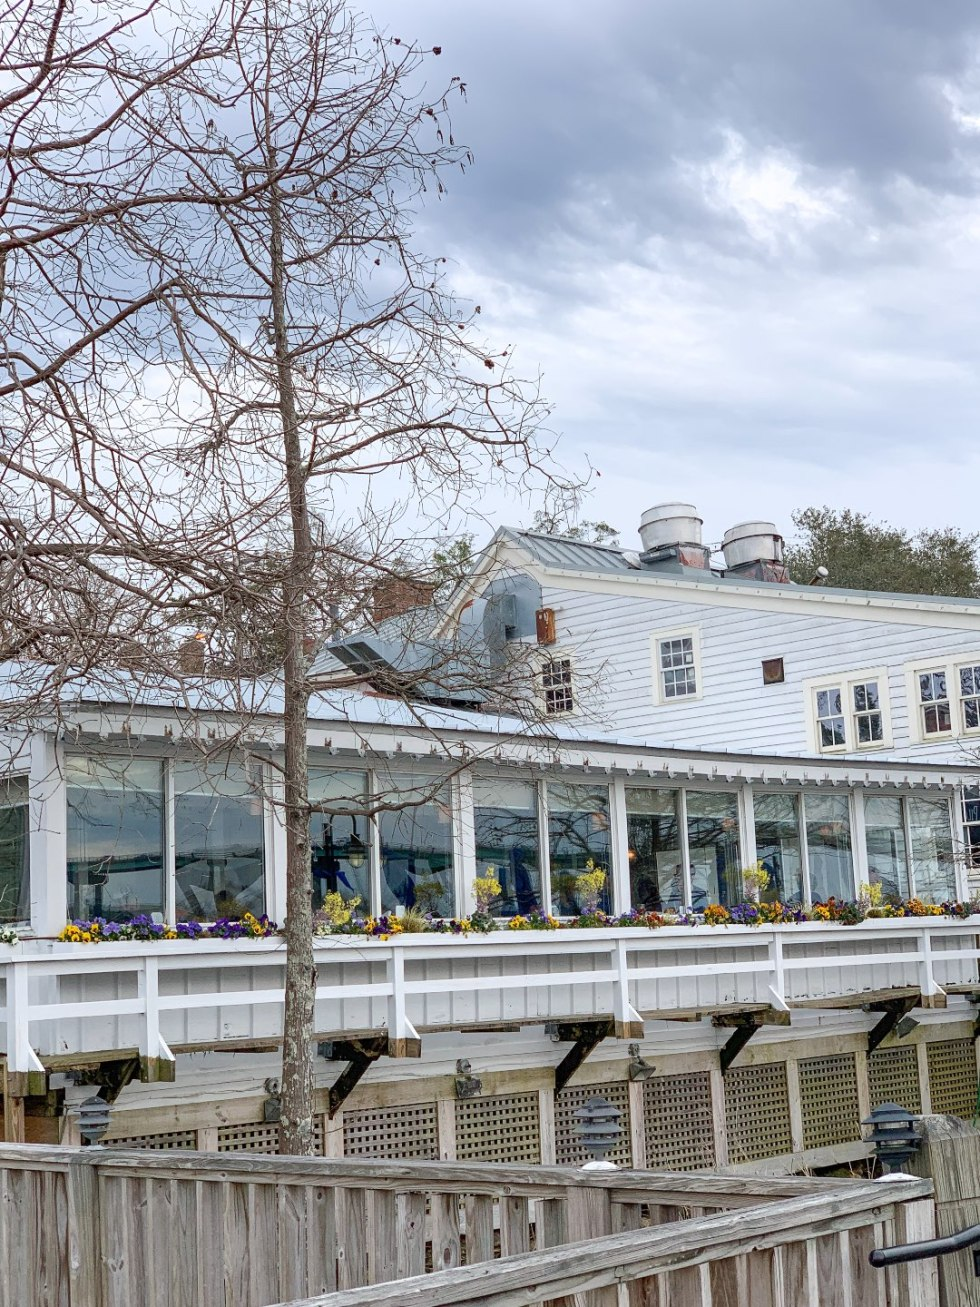 10 Awesome Things to Do in Wilmington NC - I'm Fixin' To - @mbg0112